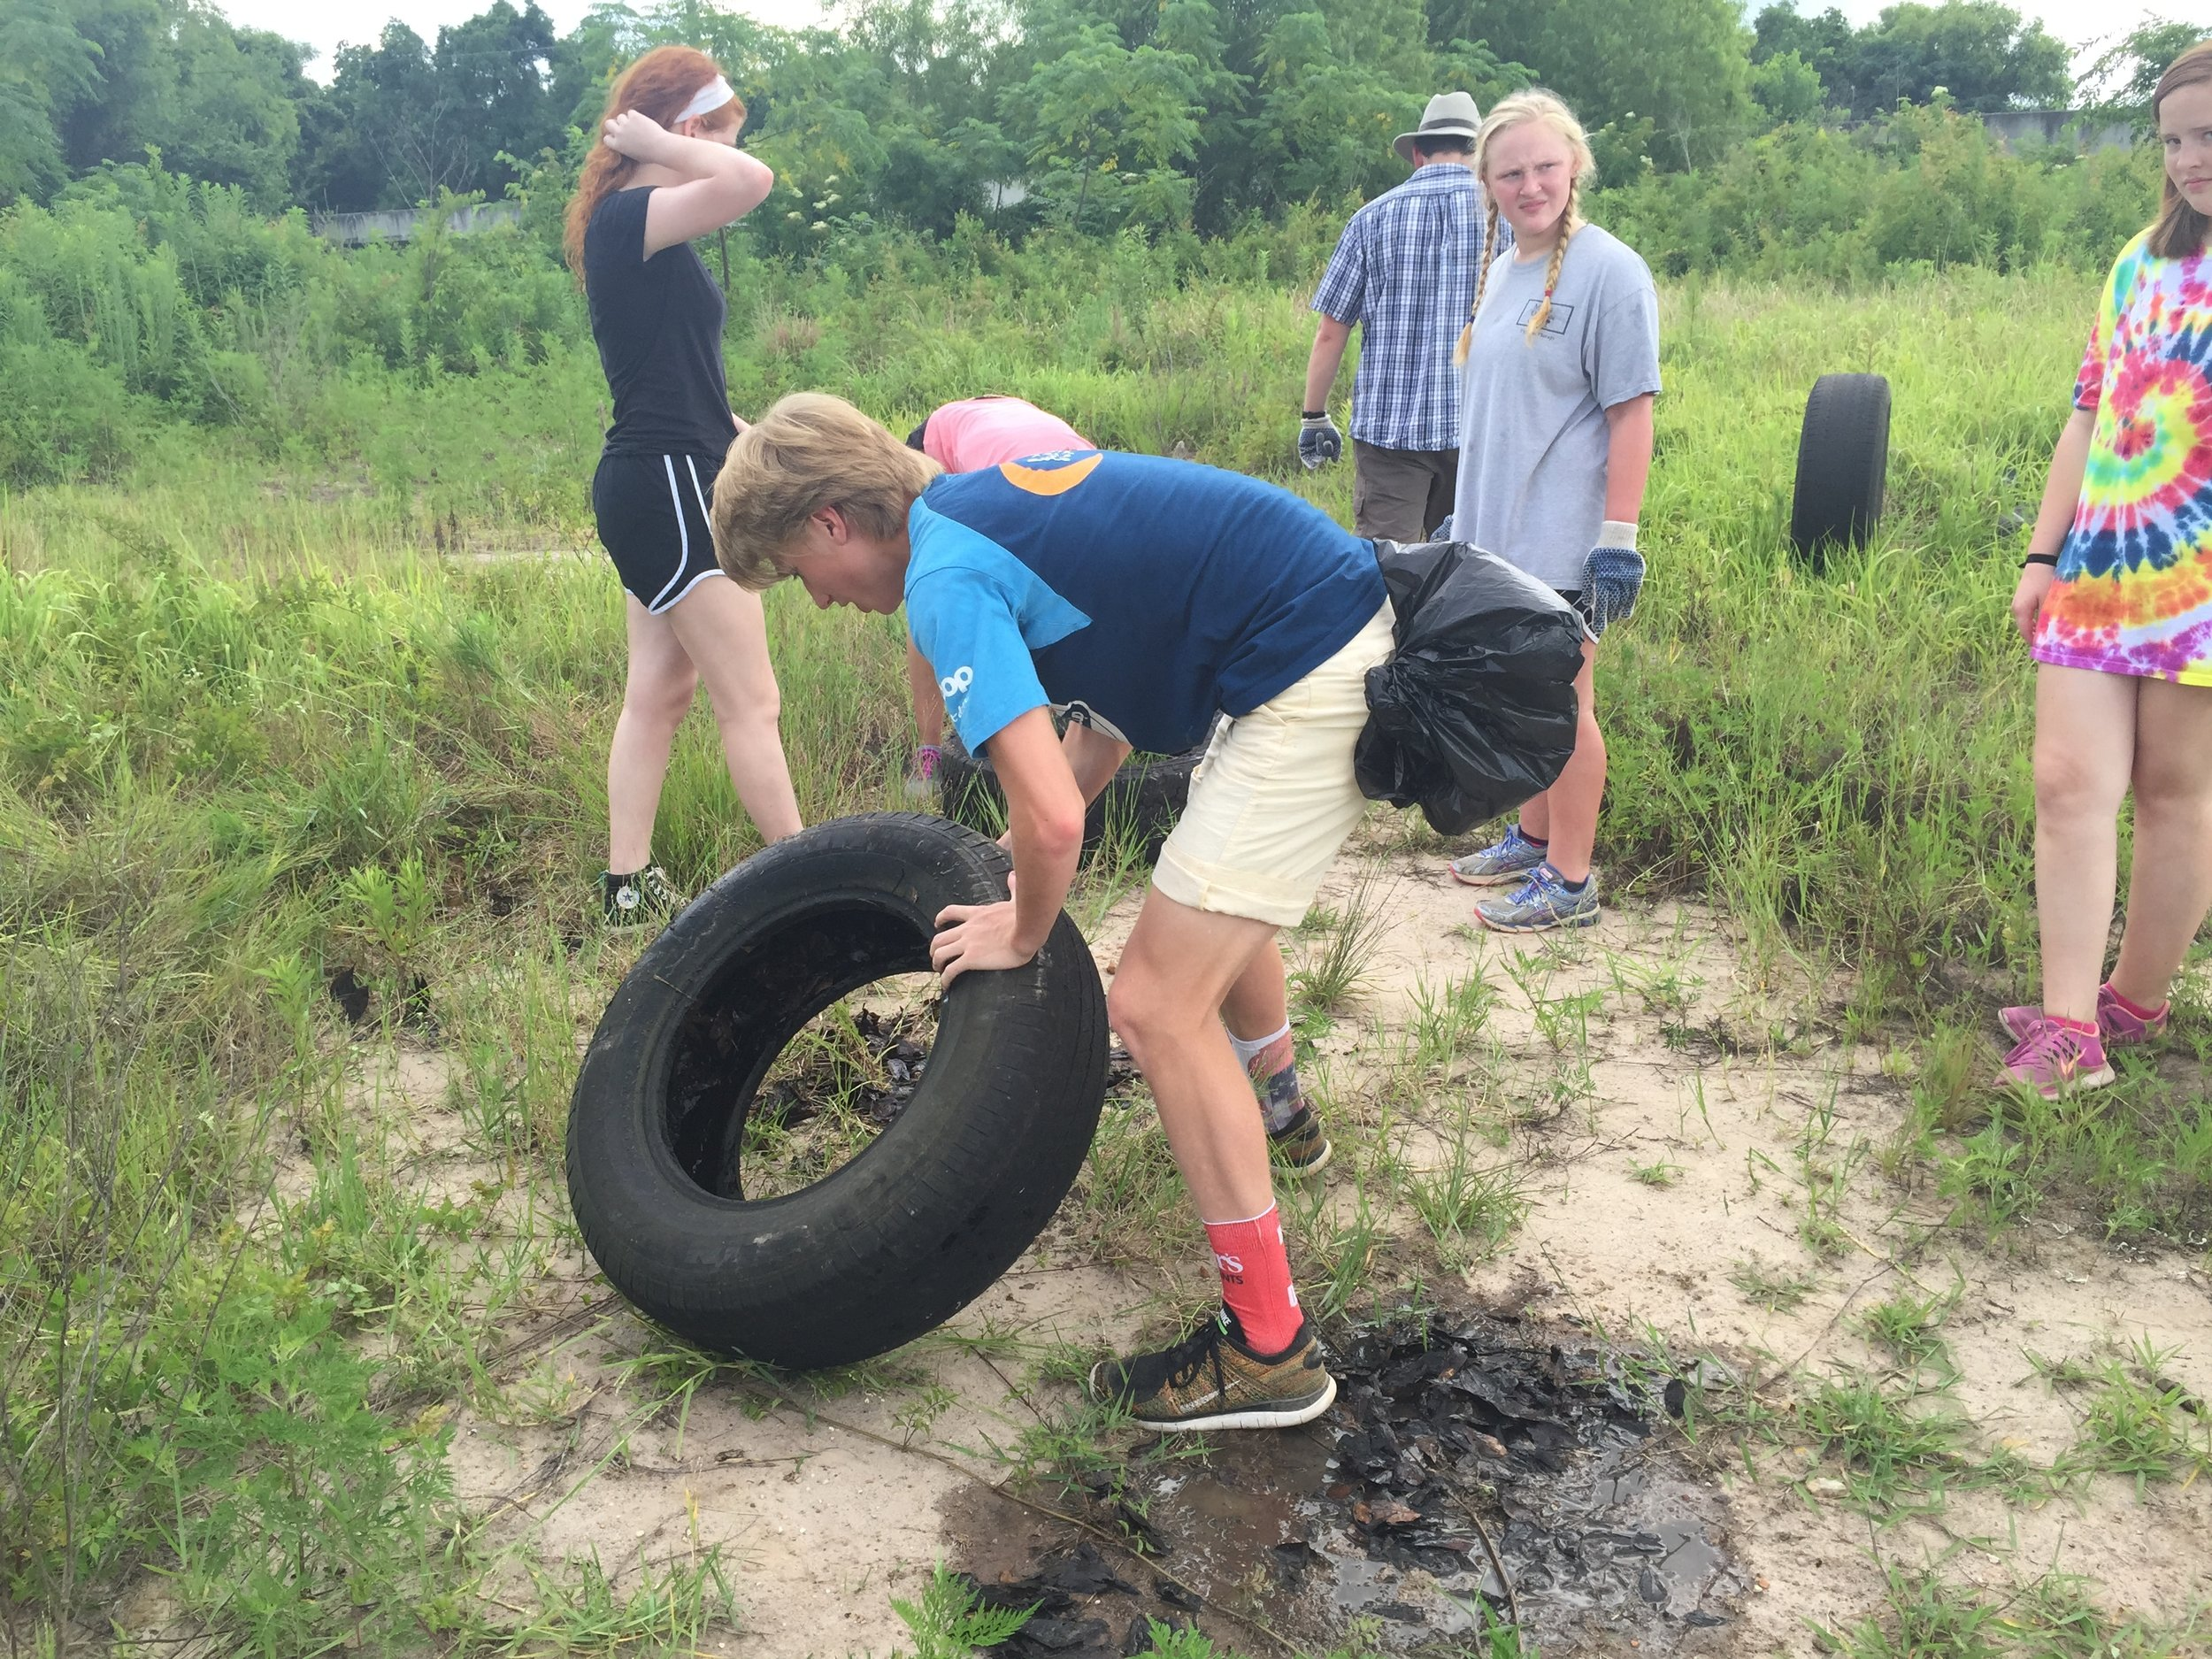 Visiting students with the Urban Mission Camp find numerous tires and other debris each summer near One Mile Creek during litter cleanups with Mobile Baykeeper.